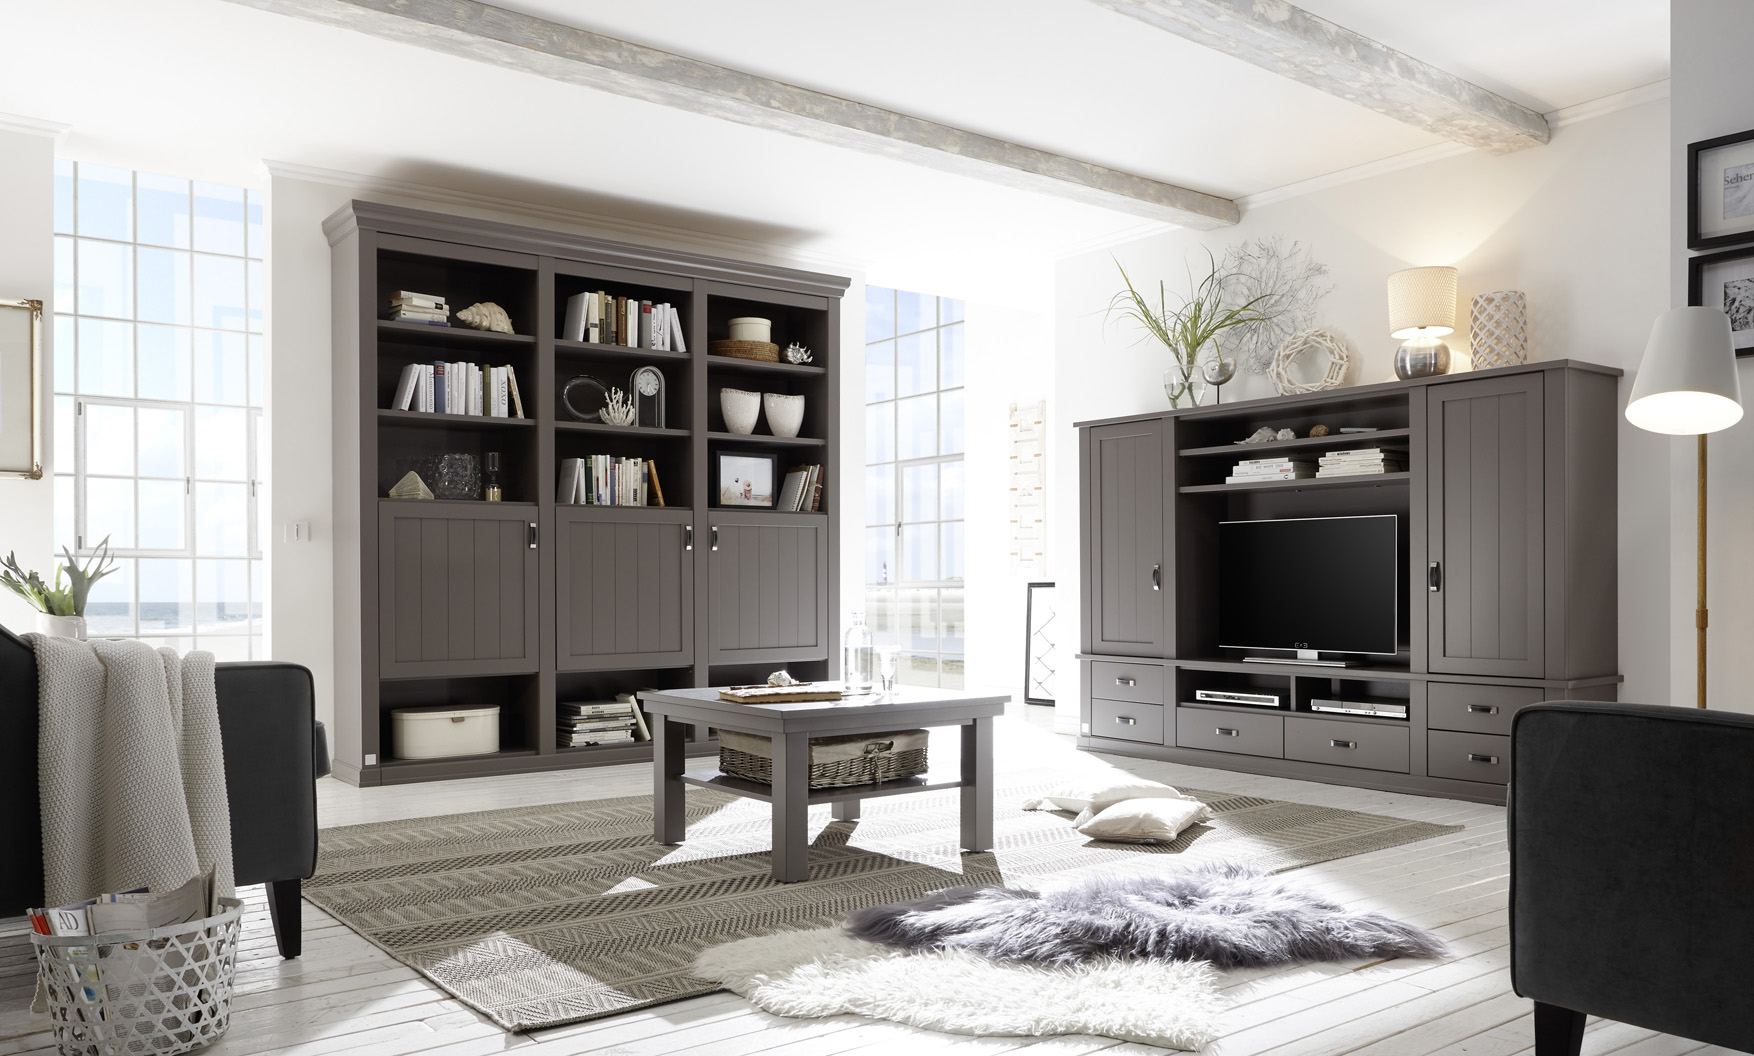 einrichtungsideen landhaus mit sylter akzent sylt living exklusive landhausm bel. Black Bedroom Furniture Sets. Home Design Ideas